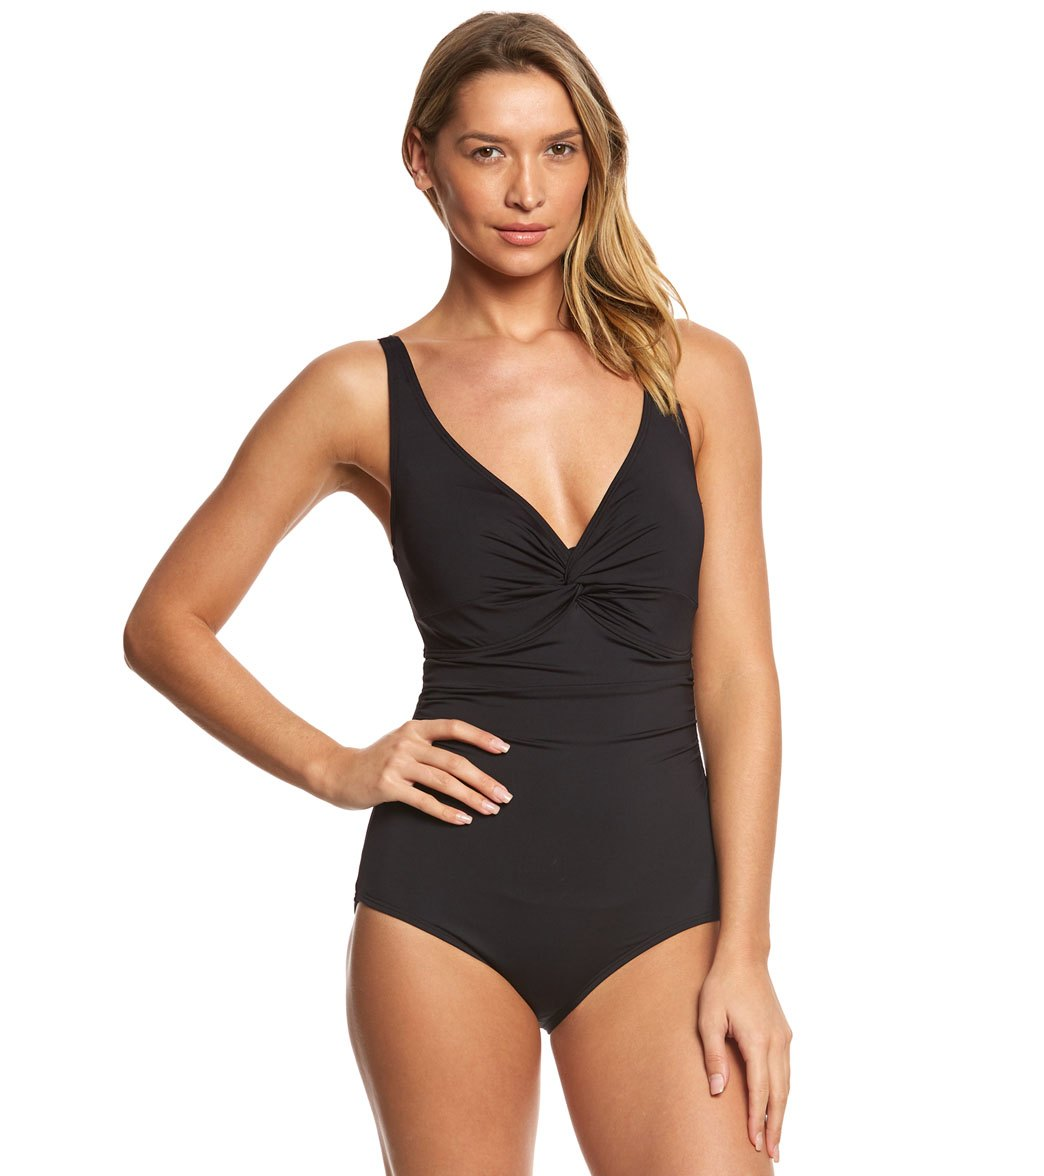 36c783705be8d Coco Reef Contours Keepsake Sapphire Twist One Piece Swimsuit (B/C Cup)